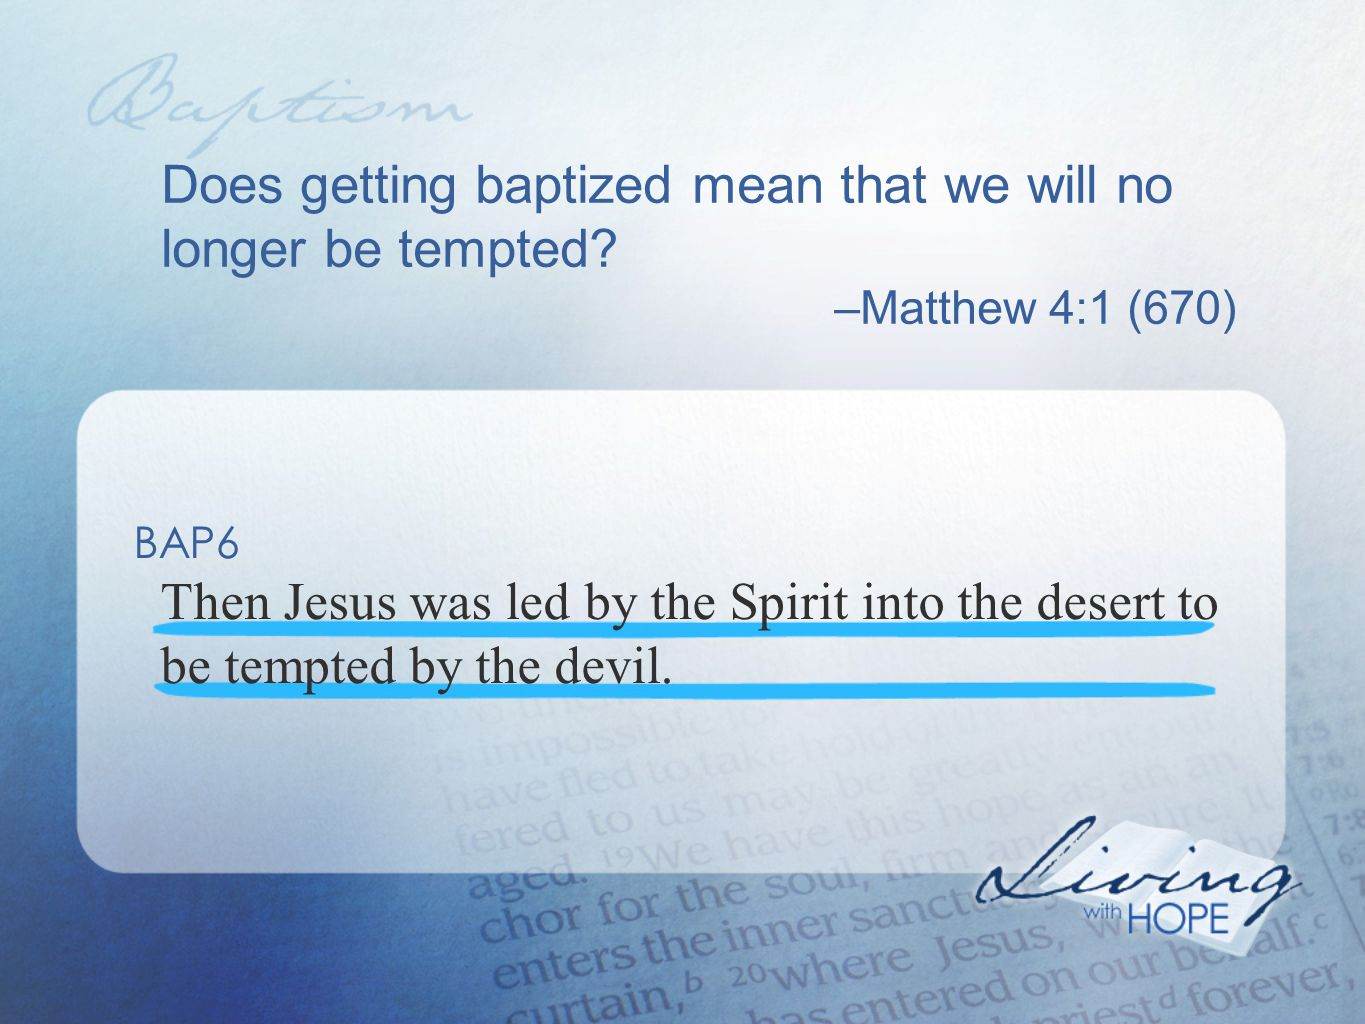 Does getting baptized mean that we will no longer be tempted.